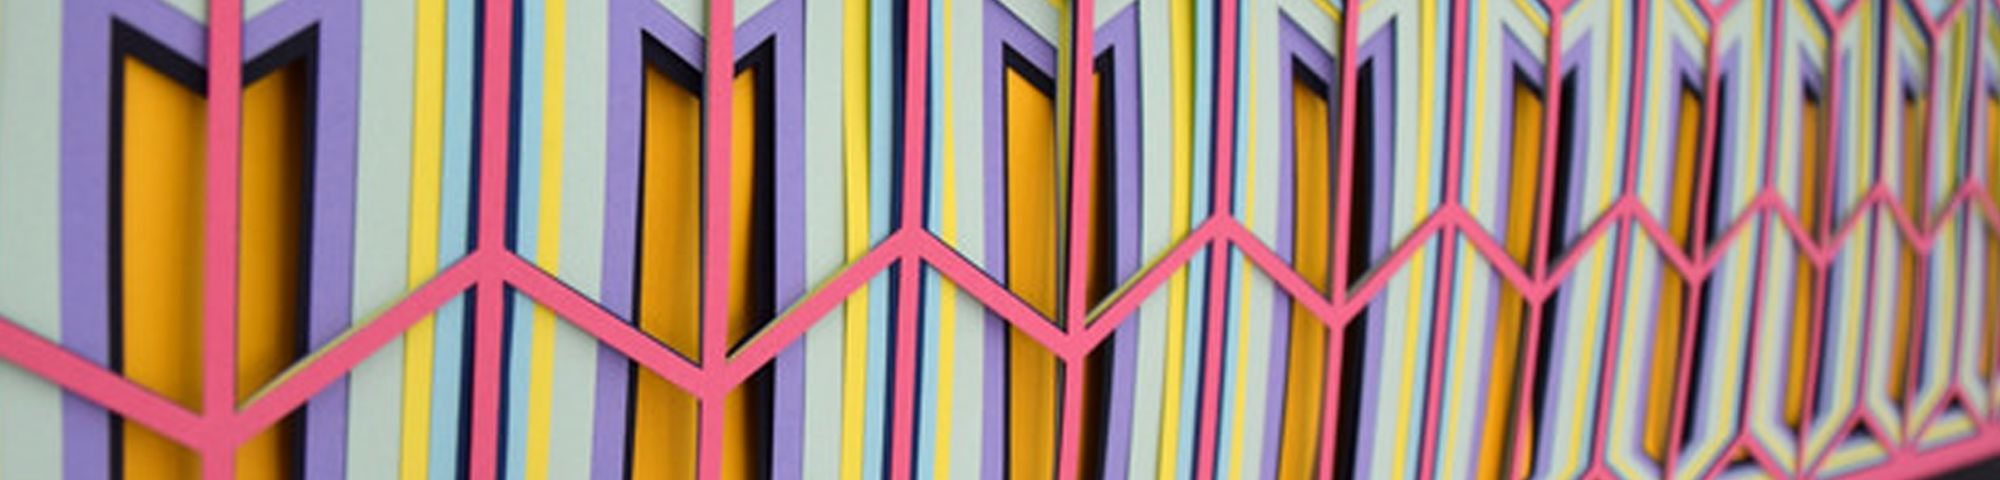 Close up side view of a colourful piece of art in orange, white and pink hanging on a wall